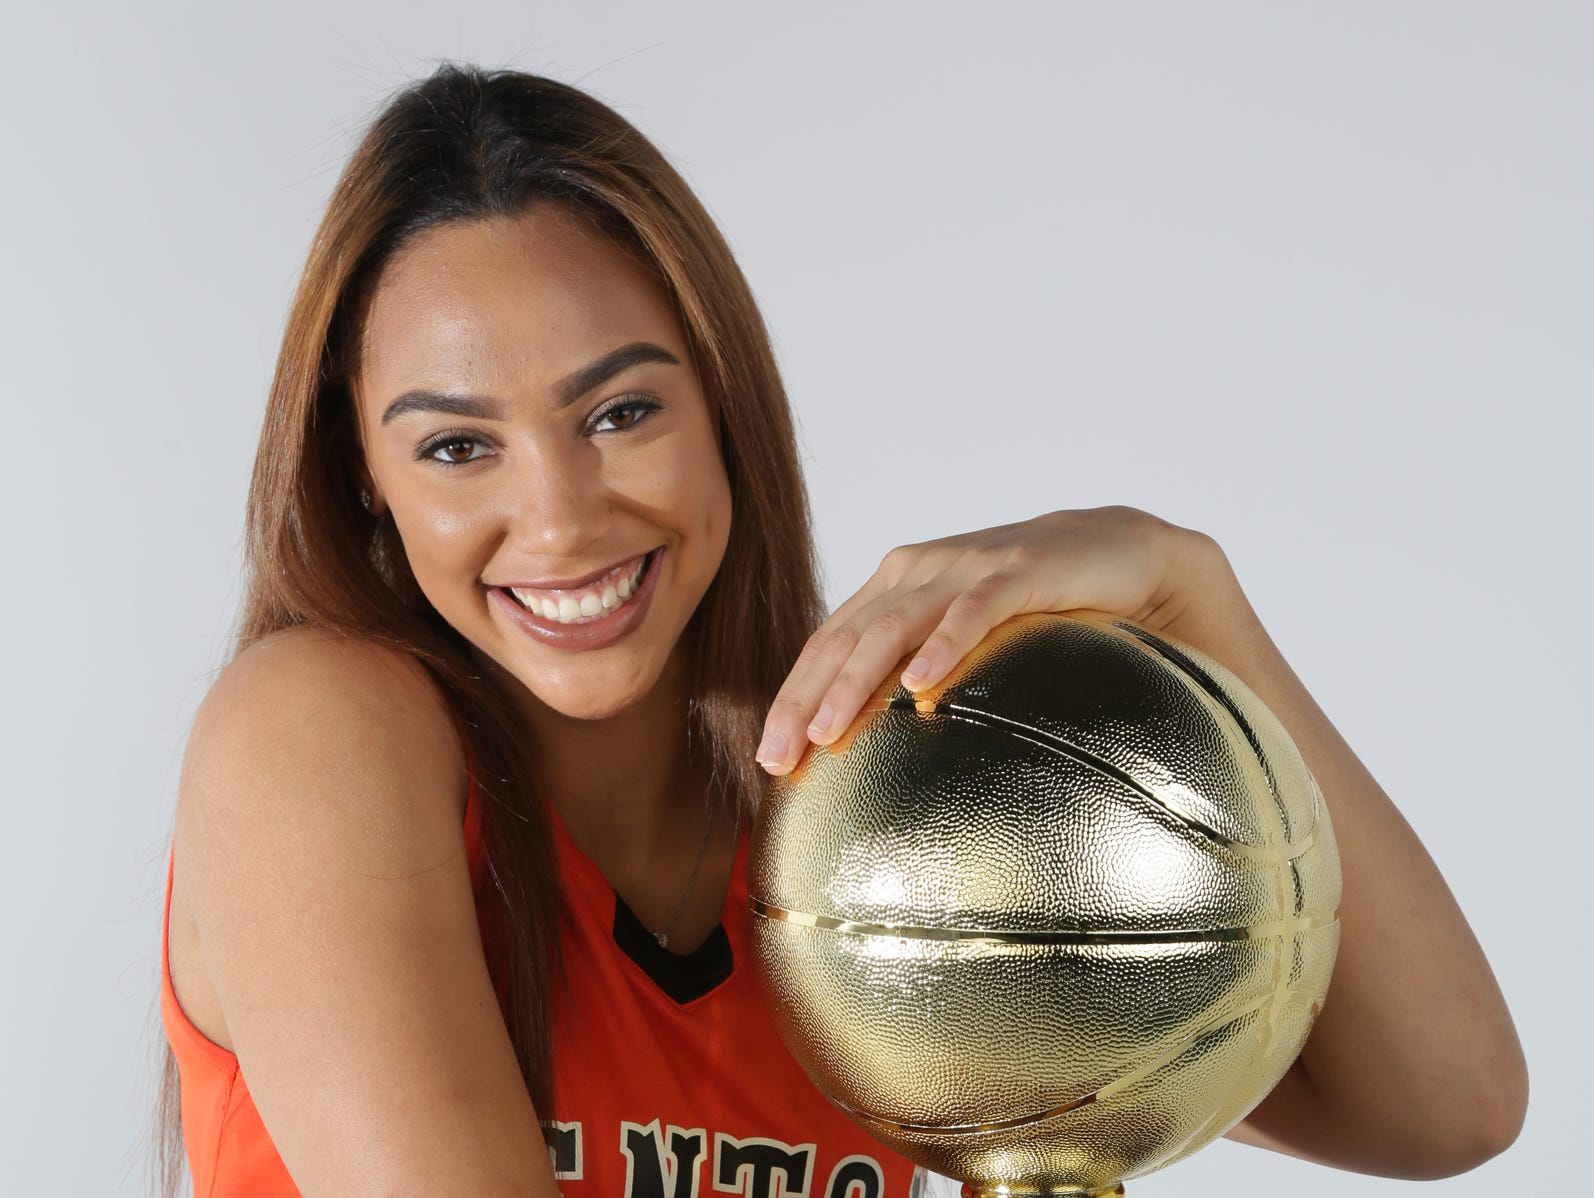 Kysre Gondrezick was named Miss Basketball 2016 by the Basketball Coaches Association of Michigan in Detroit on Monday, March 14, 2016. She plays for Benton Harbor High School. Photograph by Romain Blanquart